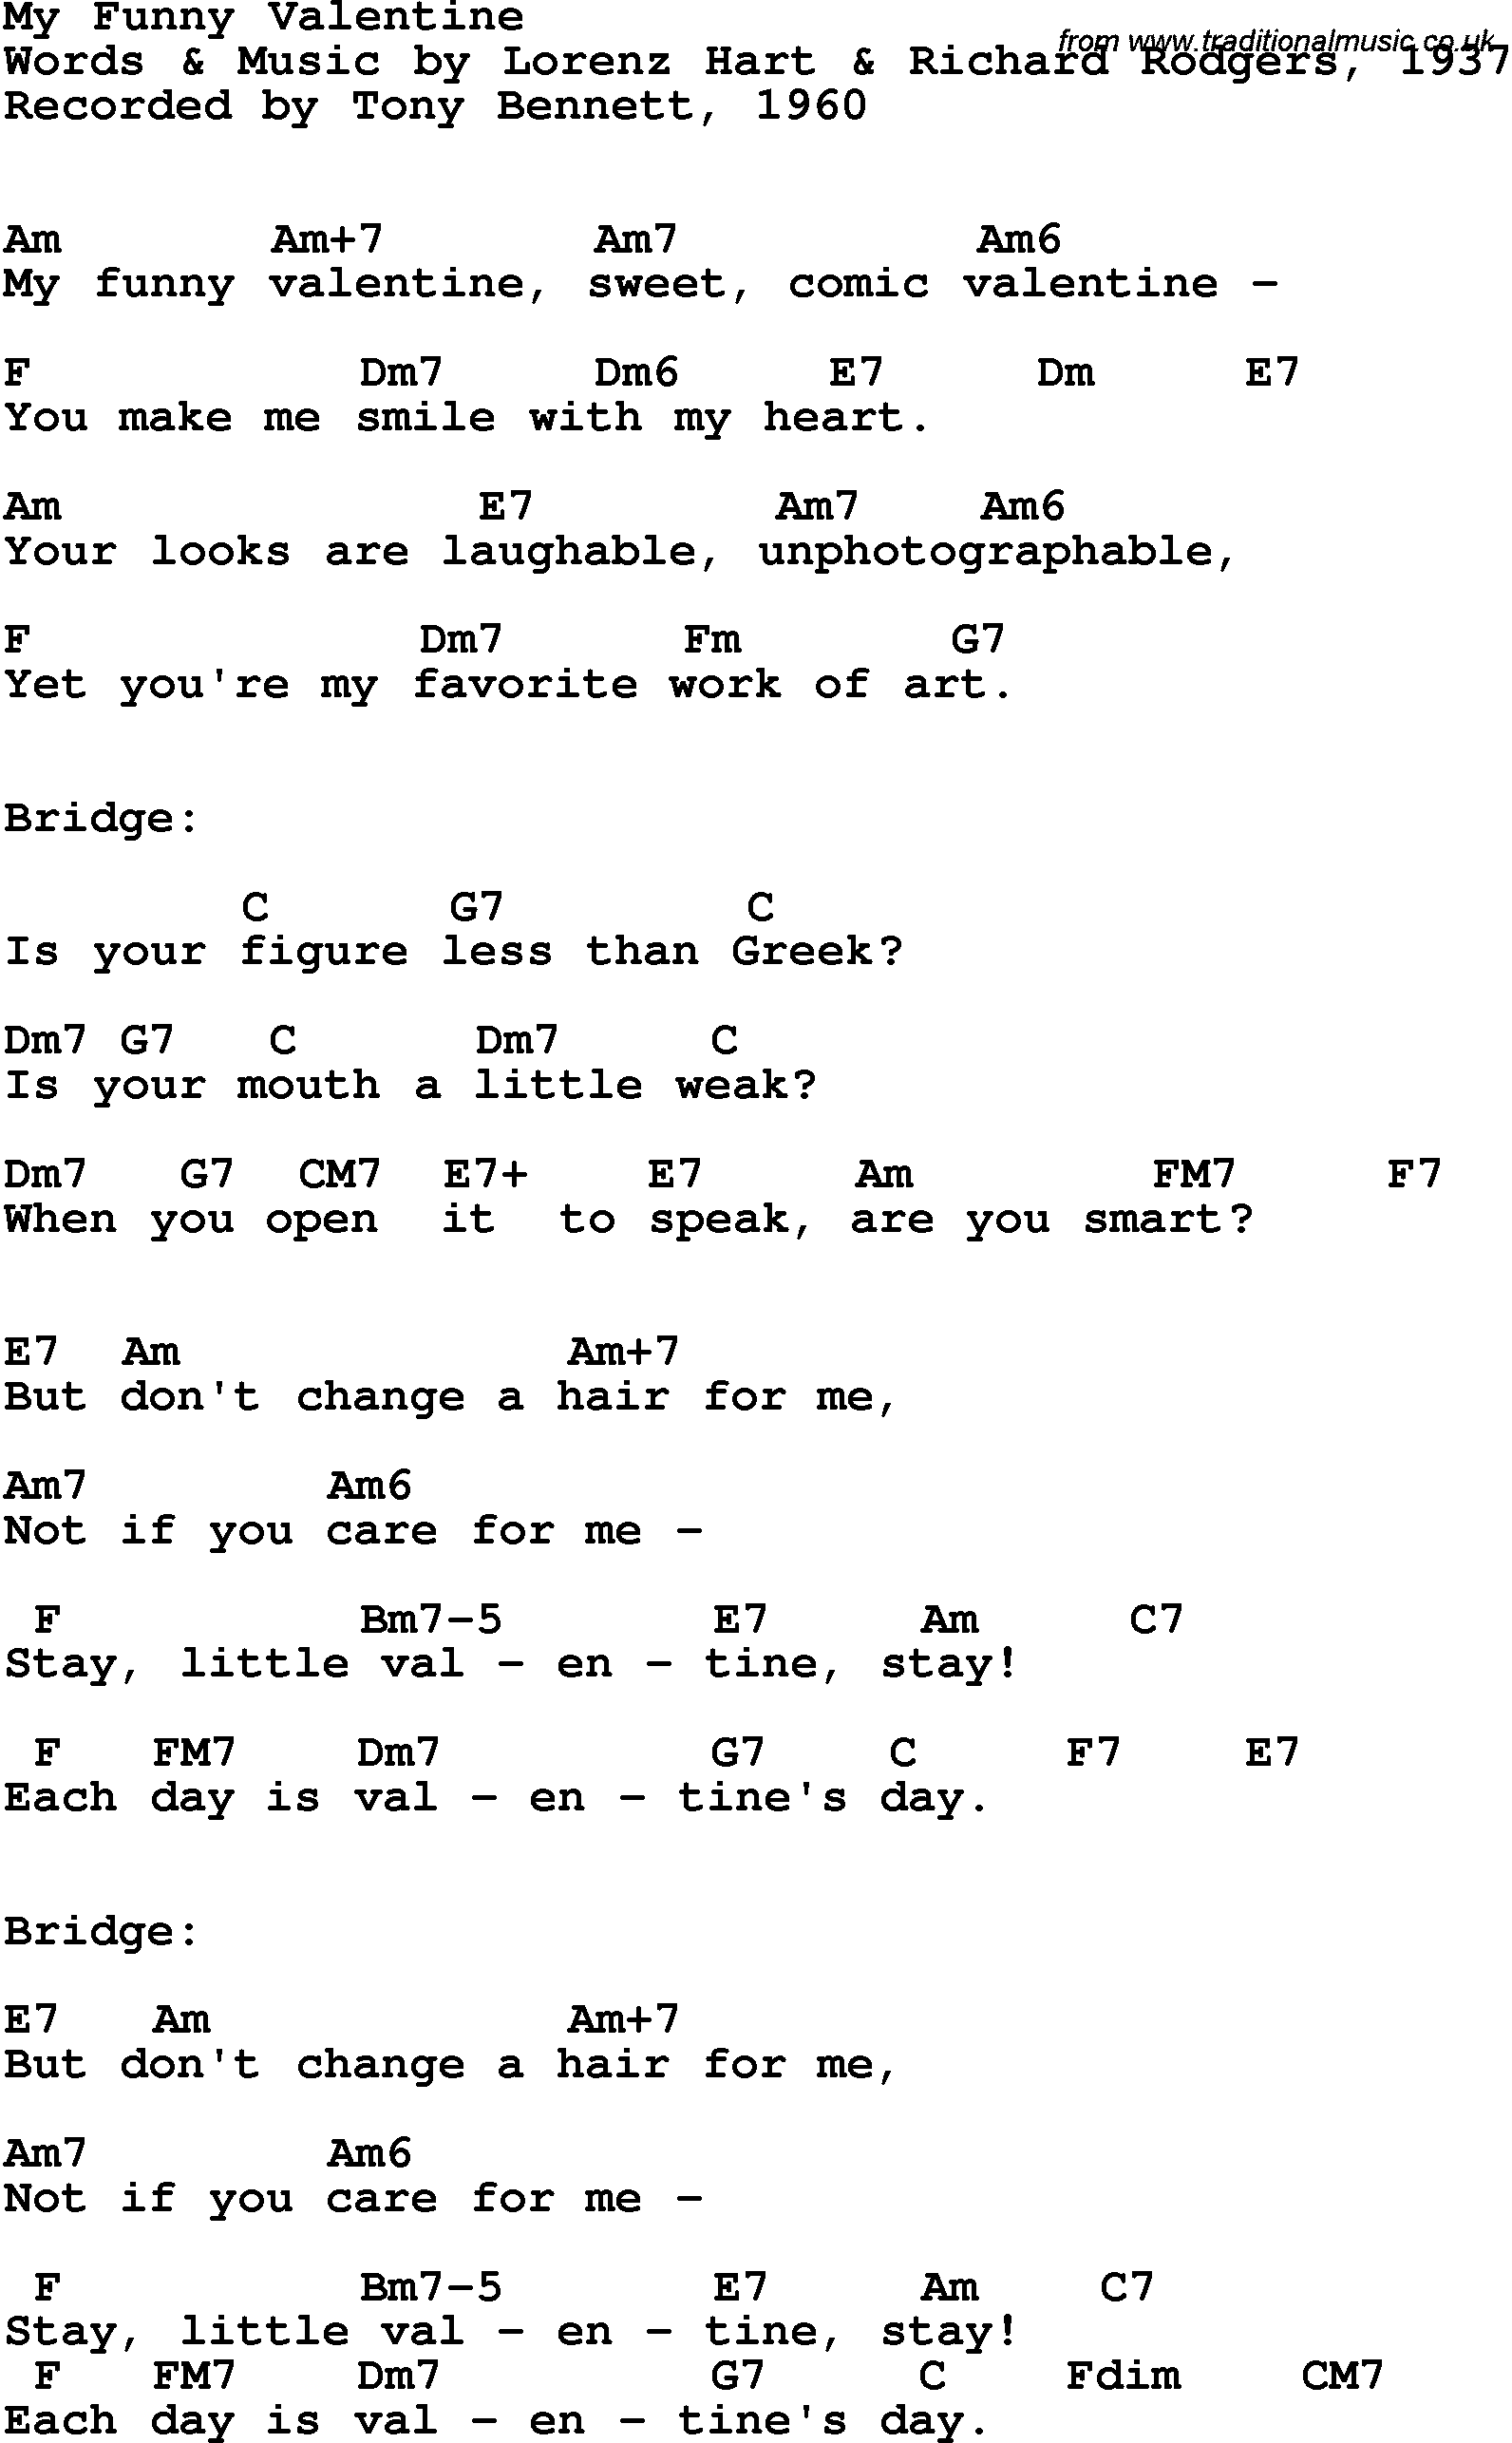 Song Lyrics With Guitar Chords For My Funny Valentine Frank Sinatra 1954 My Funny Valentine Lyrics Funny Valentine Lyrics My Funny Valentine